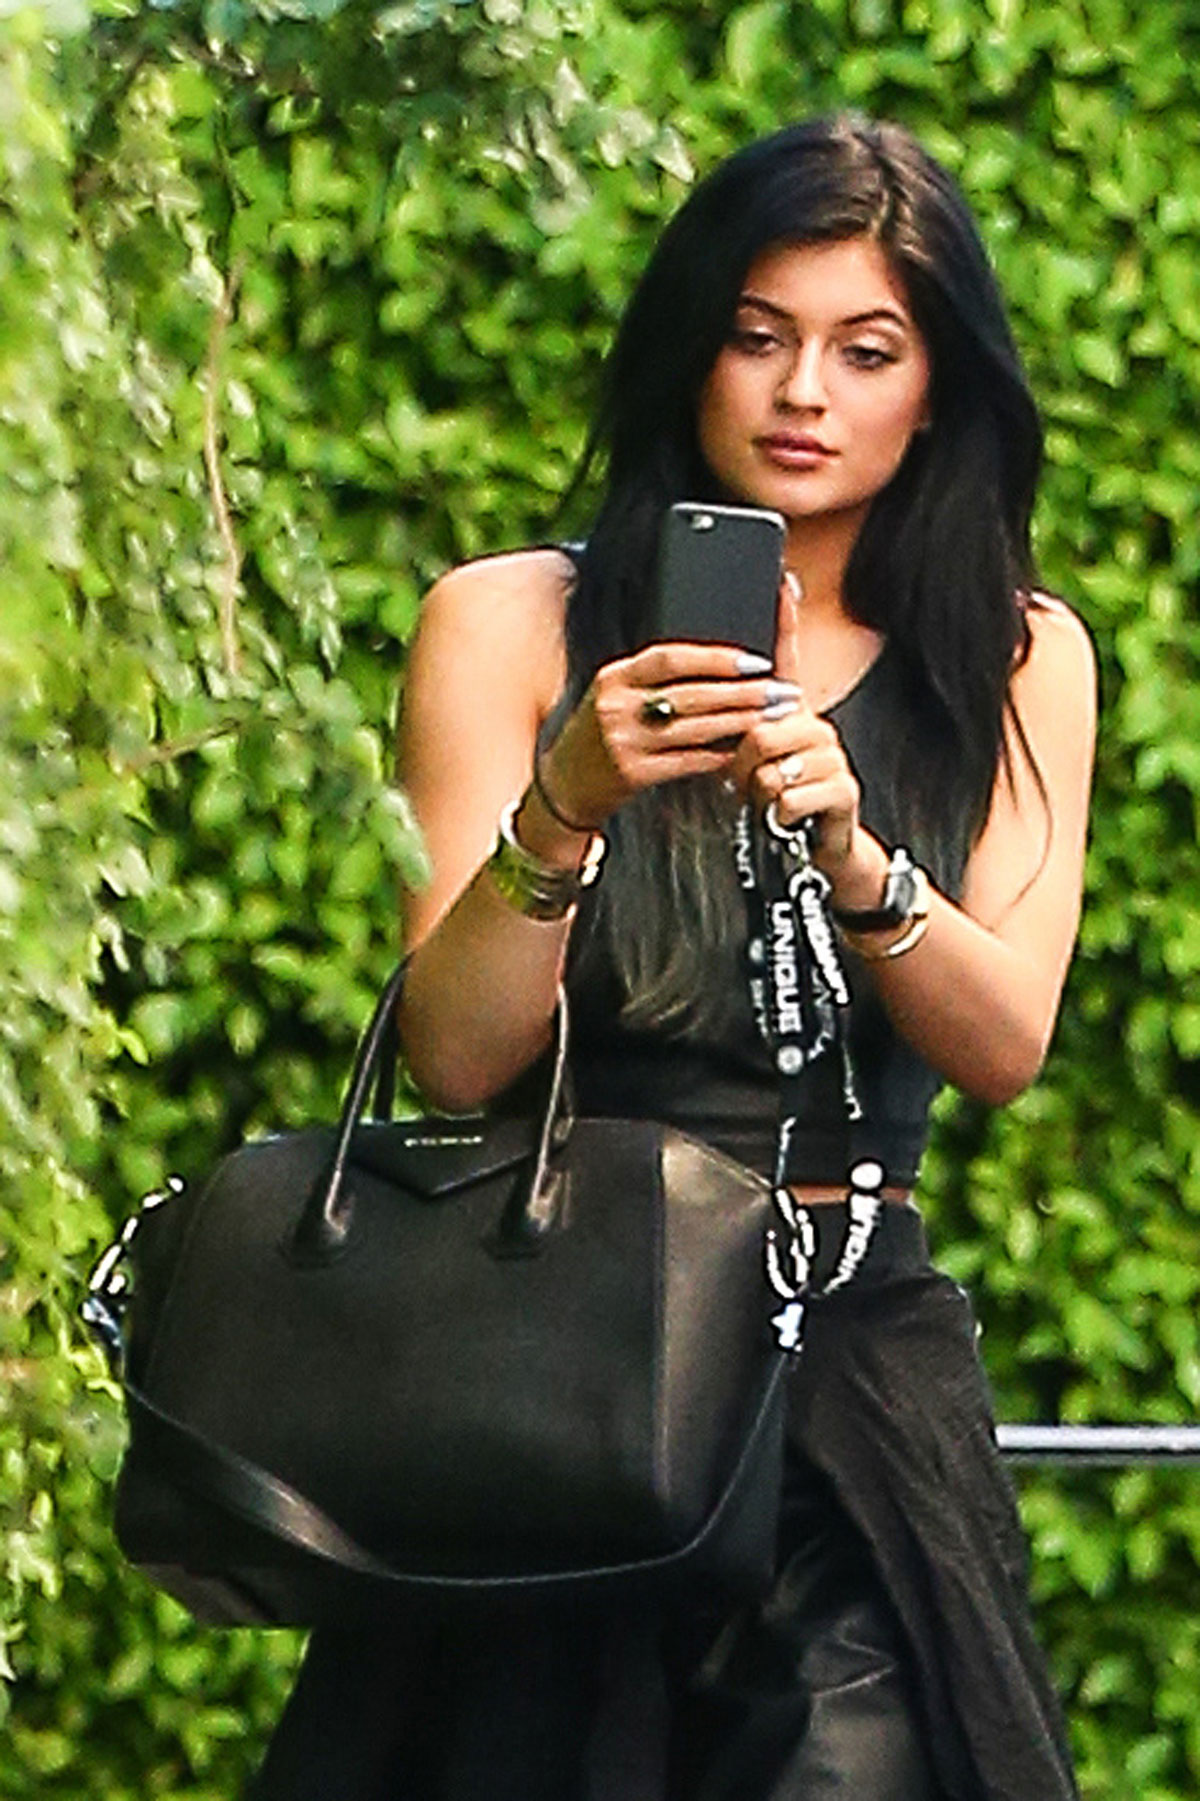 Kylie Jenner out in Calabasas